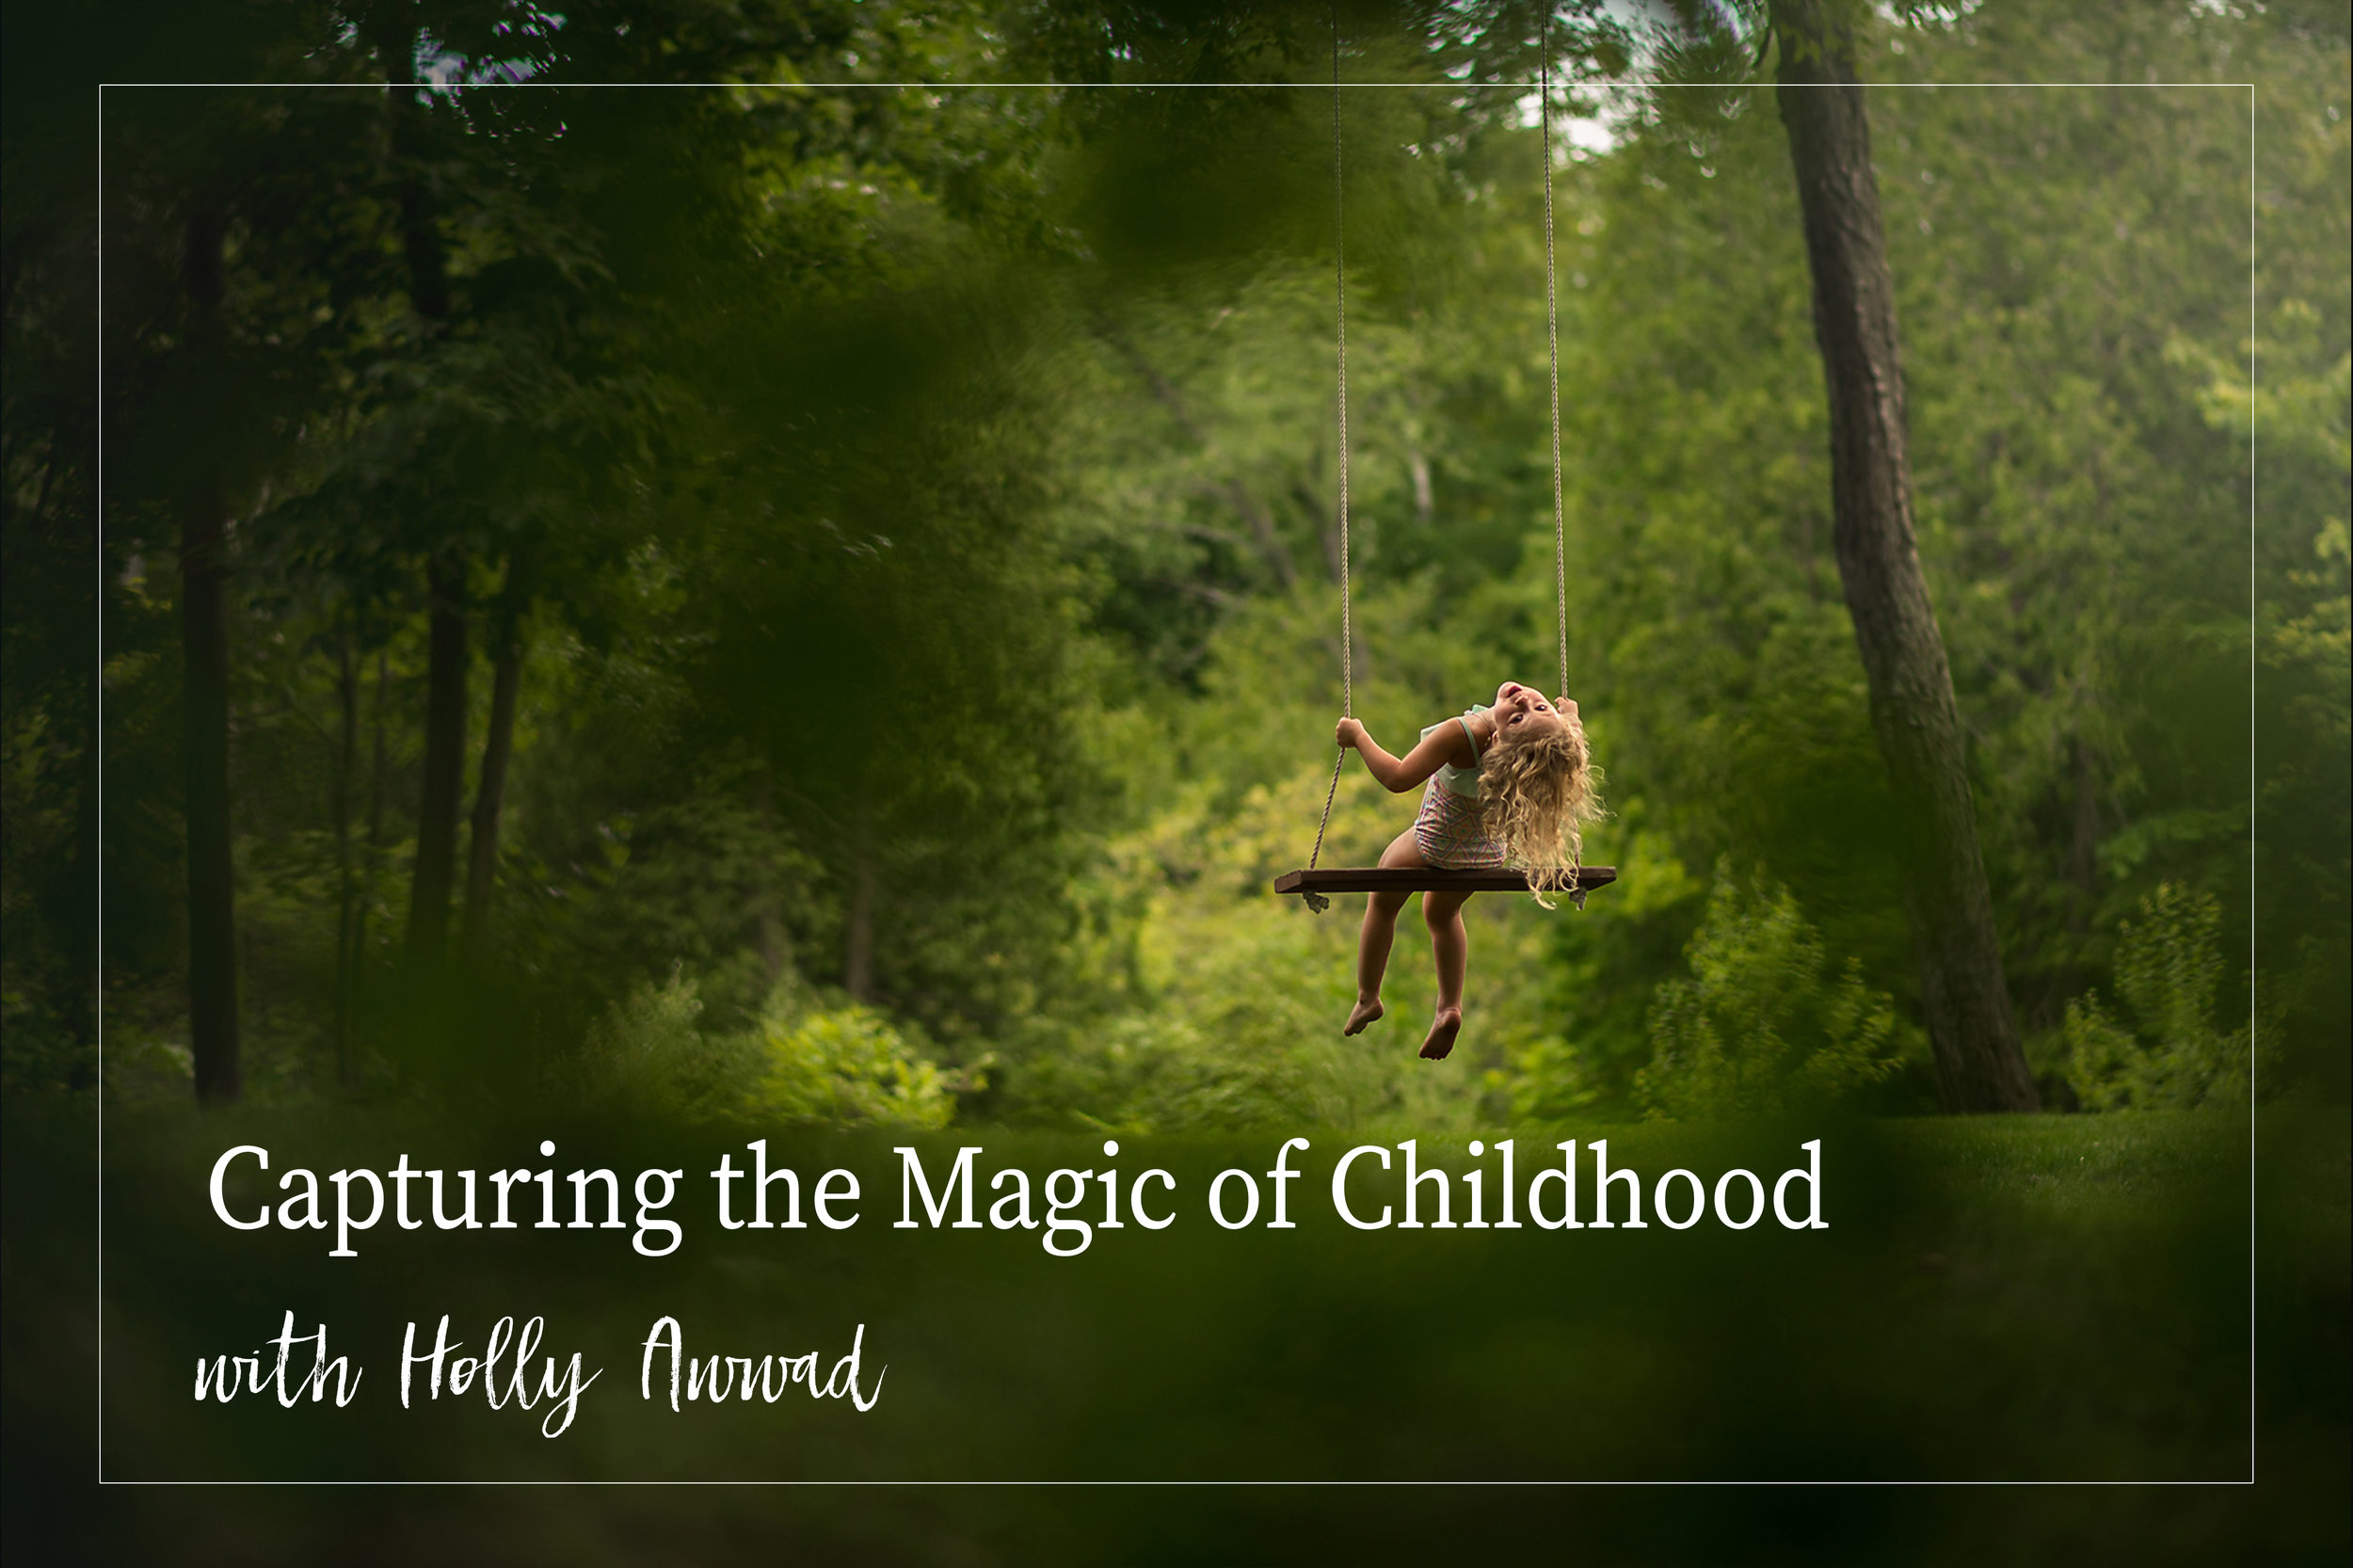 Capturing the Magic of Childhood - with Holly Awwad